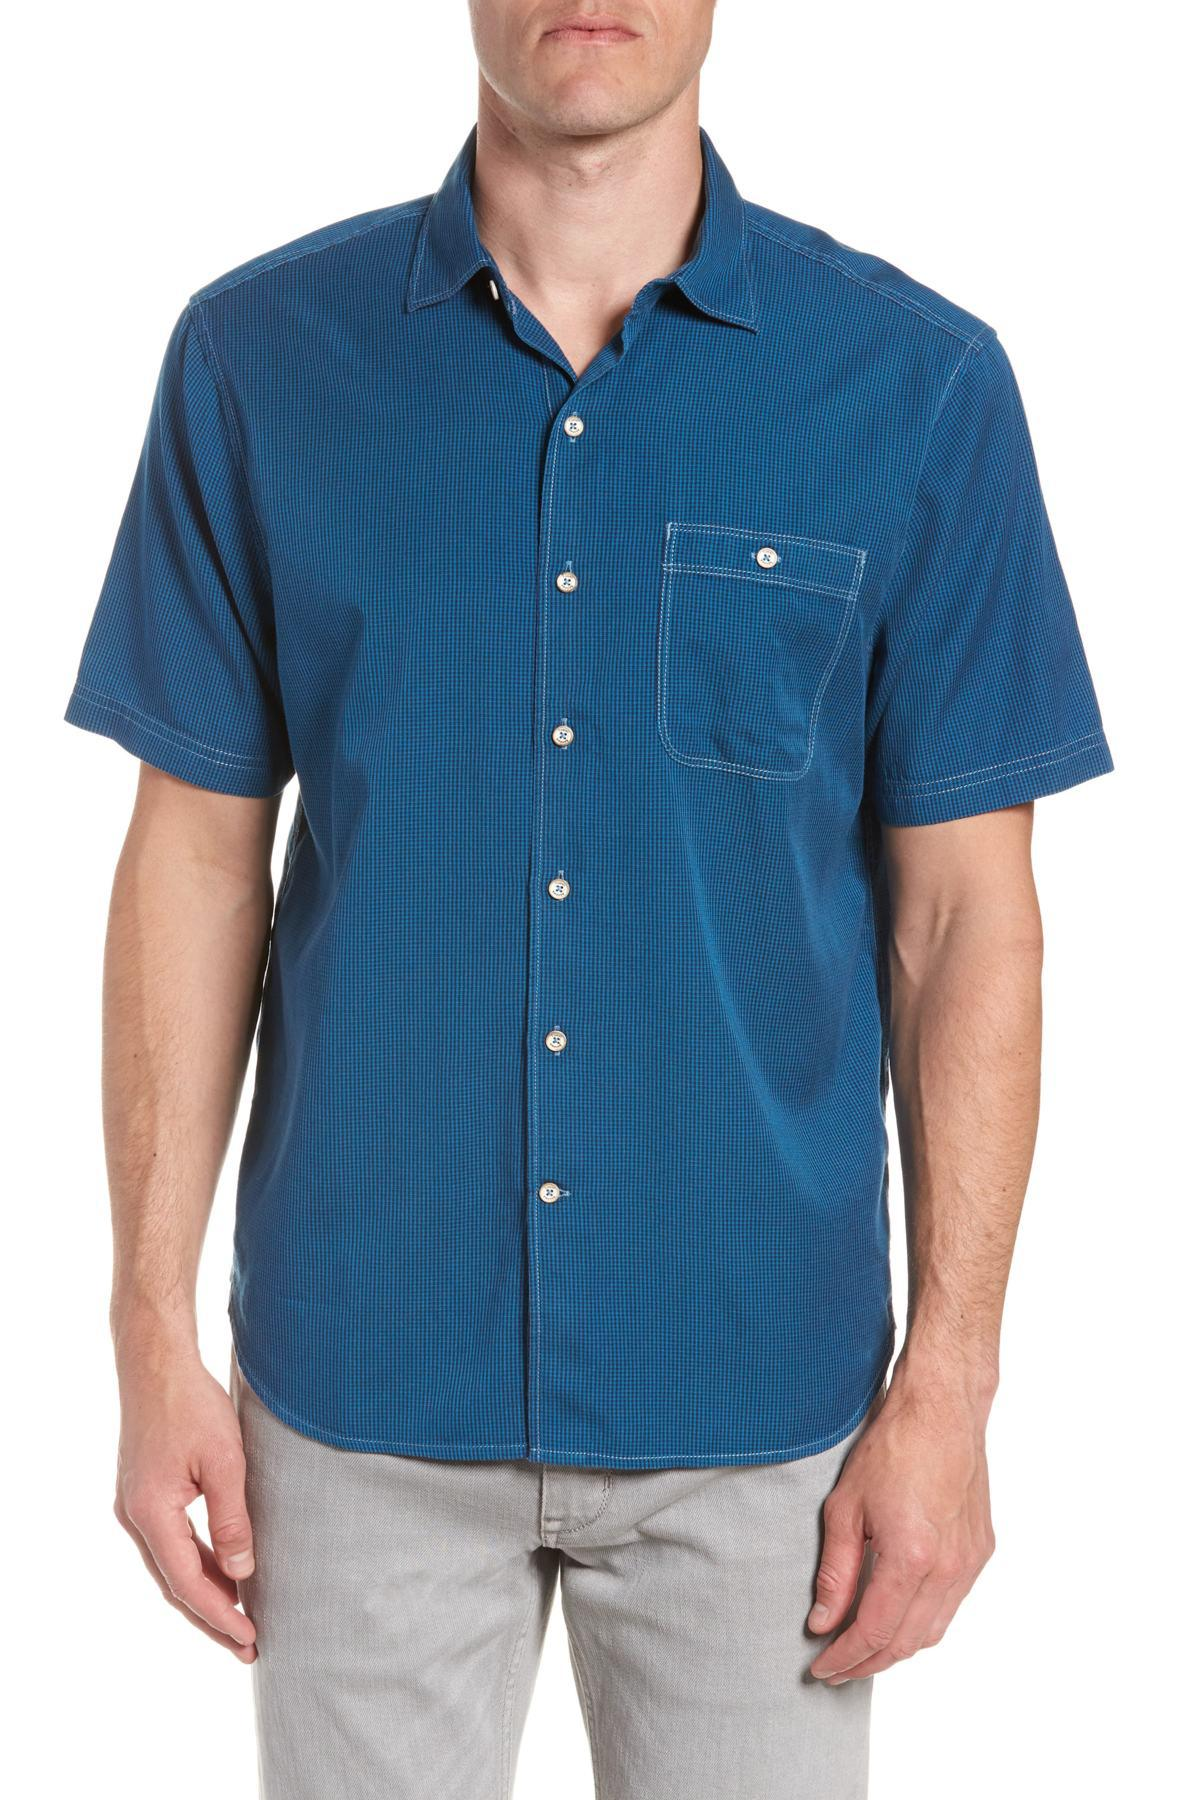 9d3ec4ee Lyst - Tommy Bahama Twilly Check Sport Shirt in Blue for Men